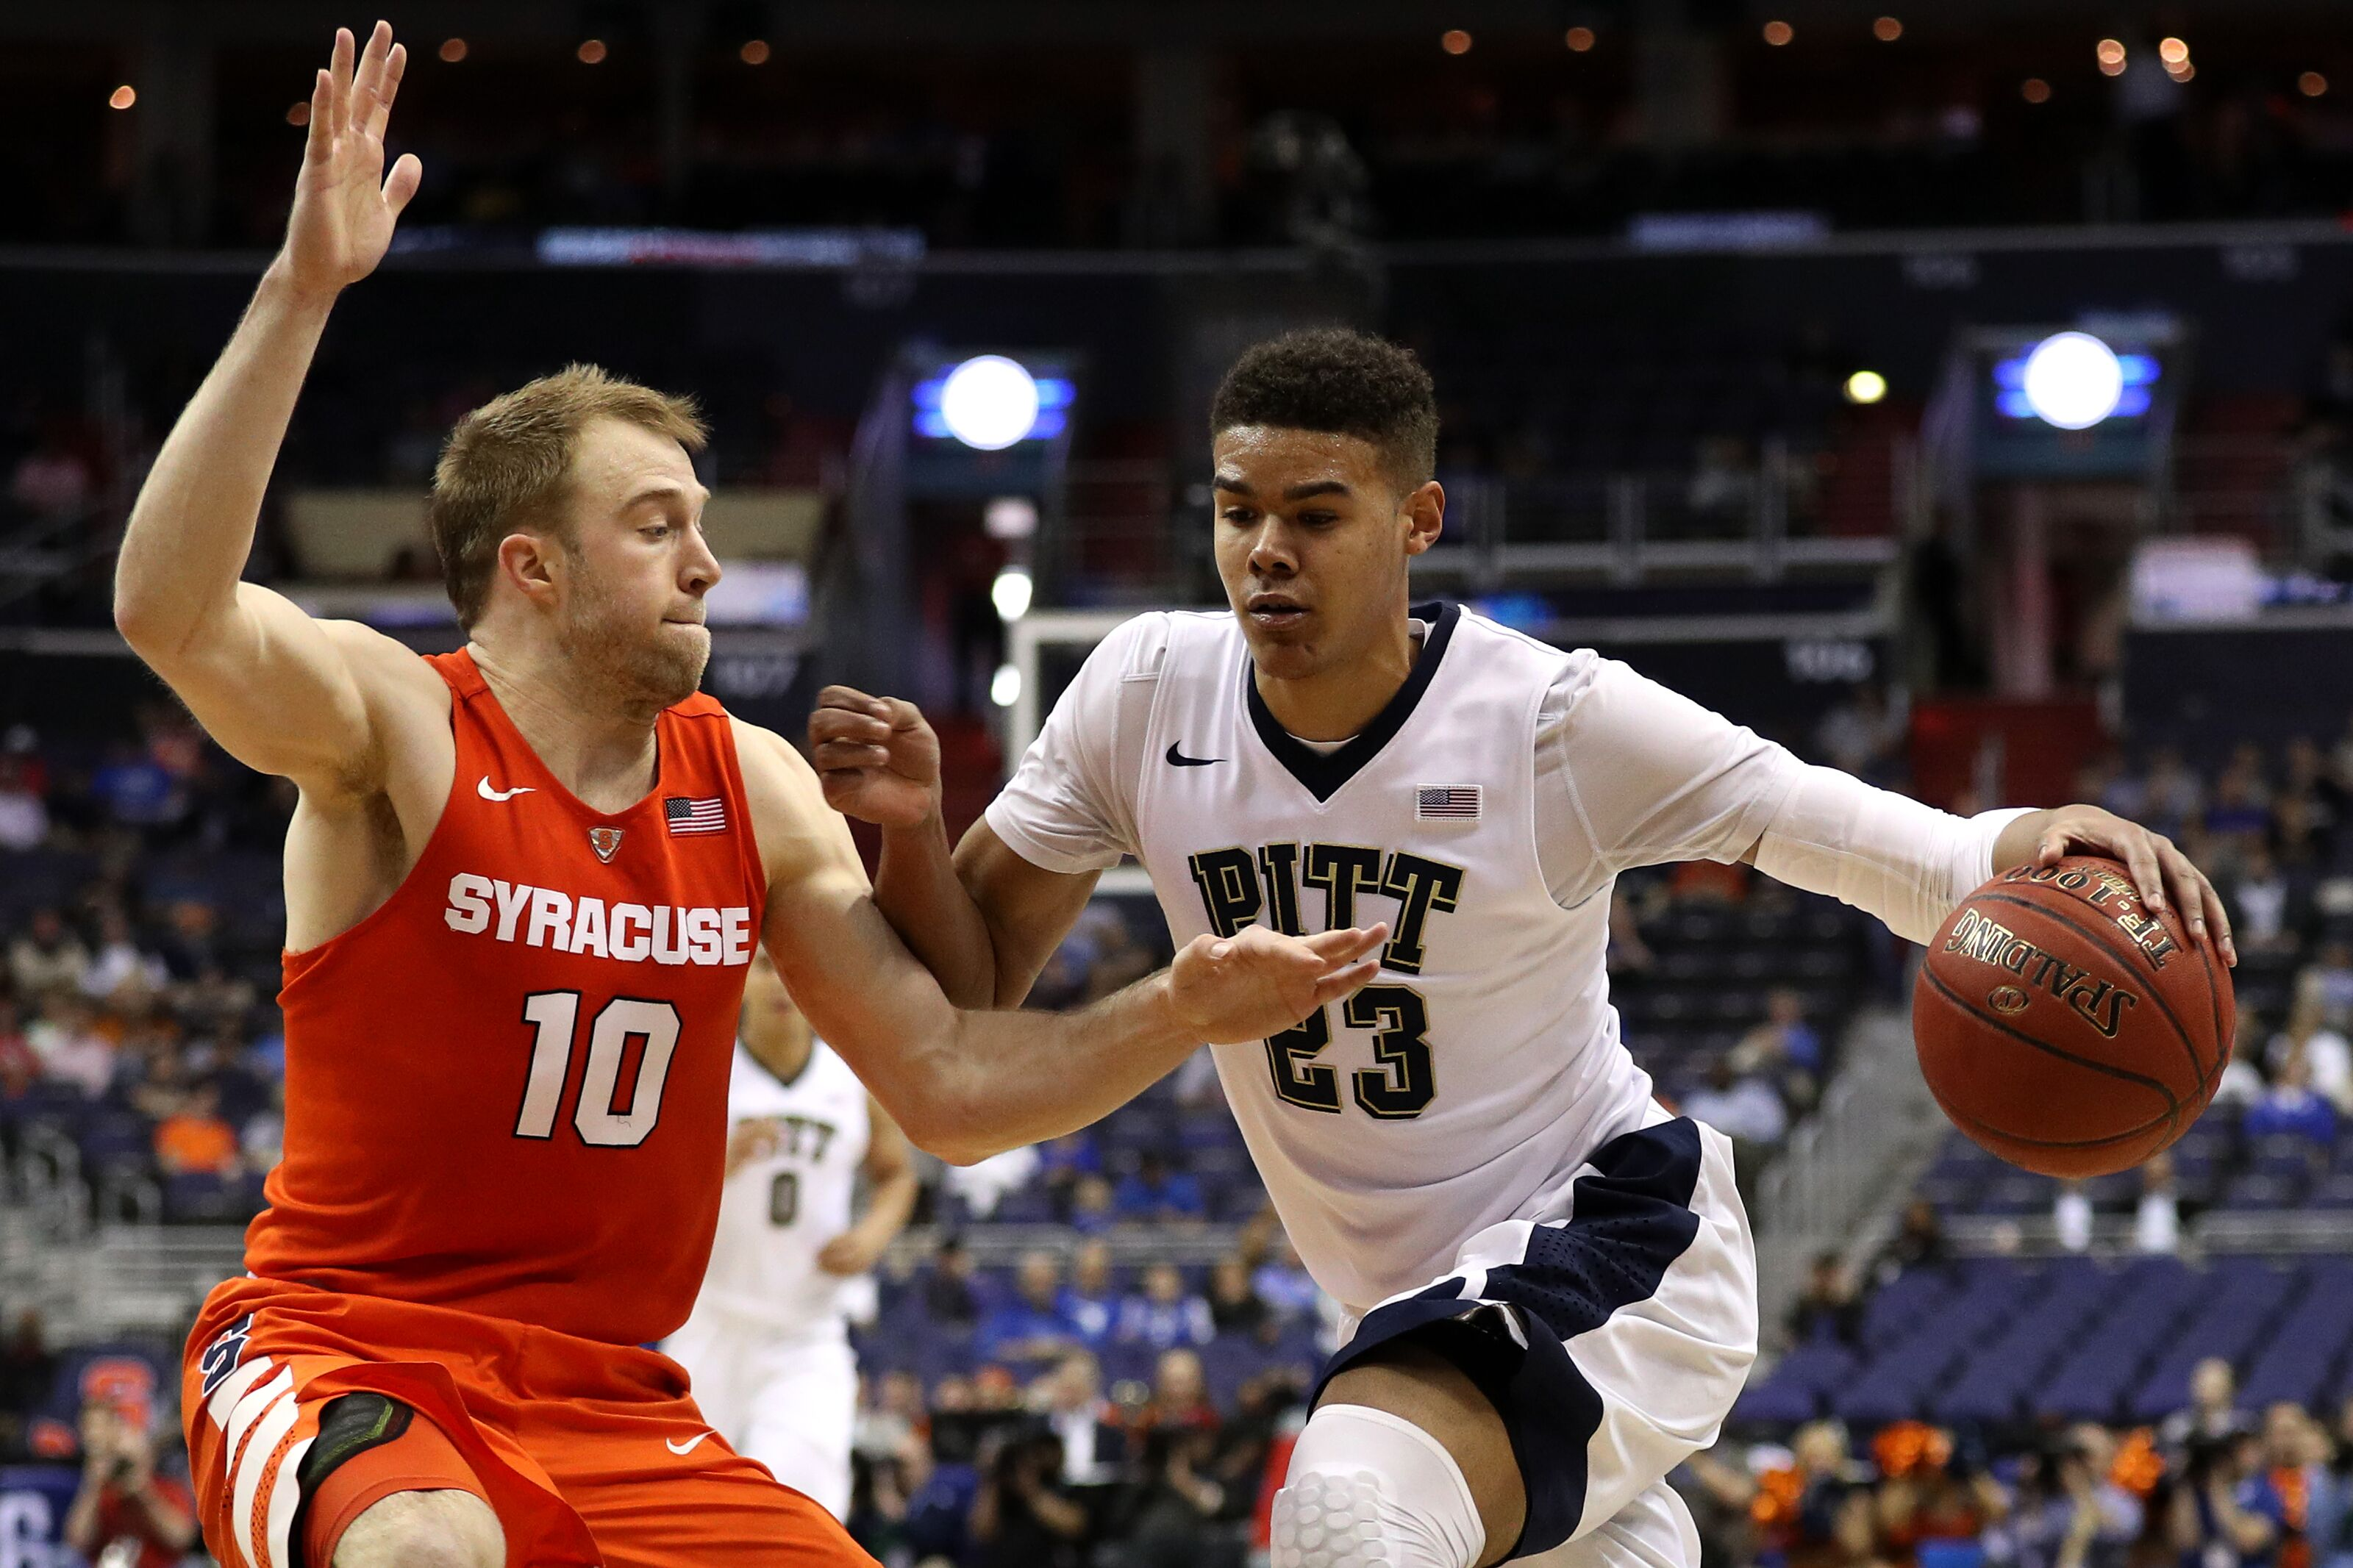 Acc Basketball Top 5 Recent Matchups For Pittsburgh Vs Syracuse